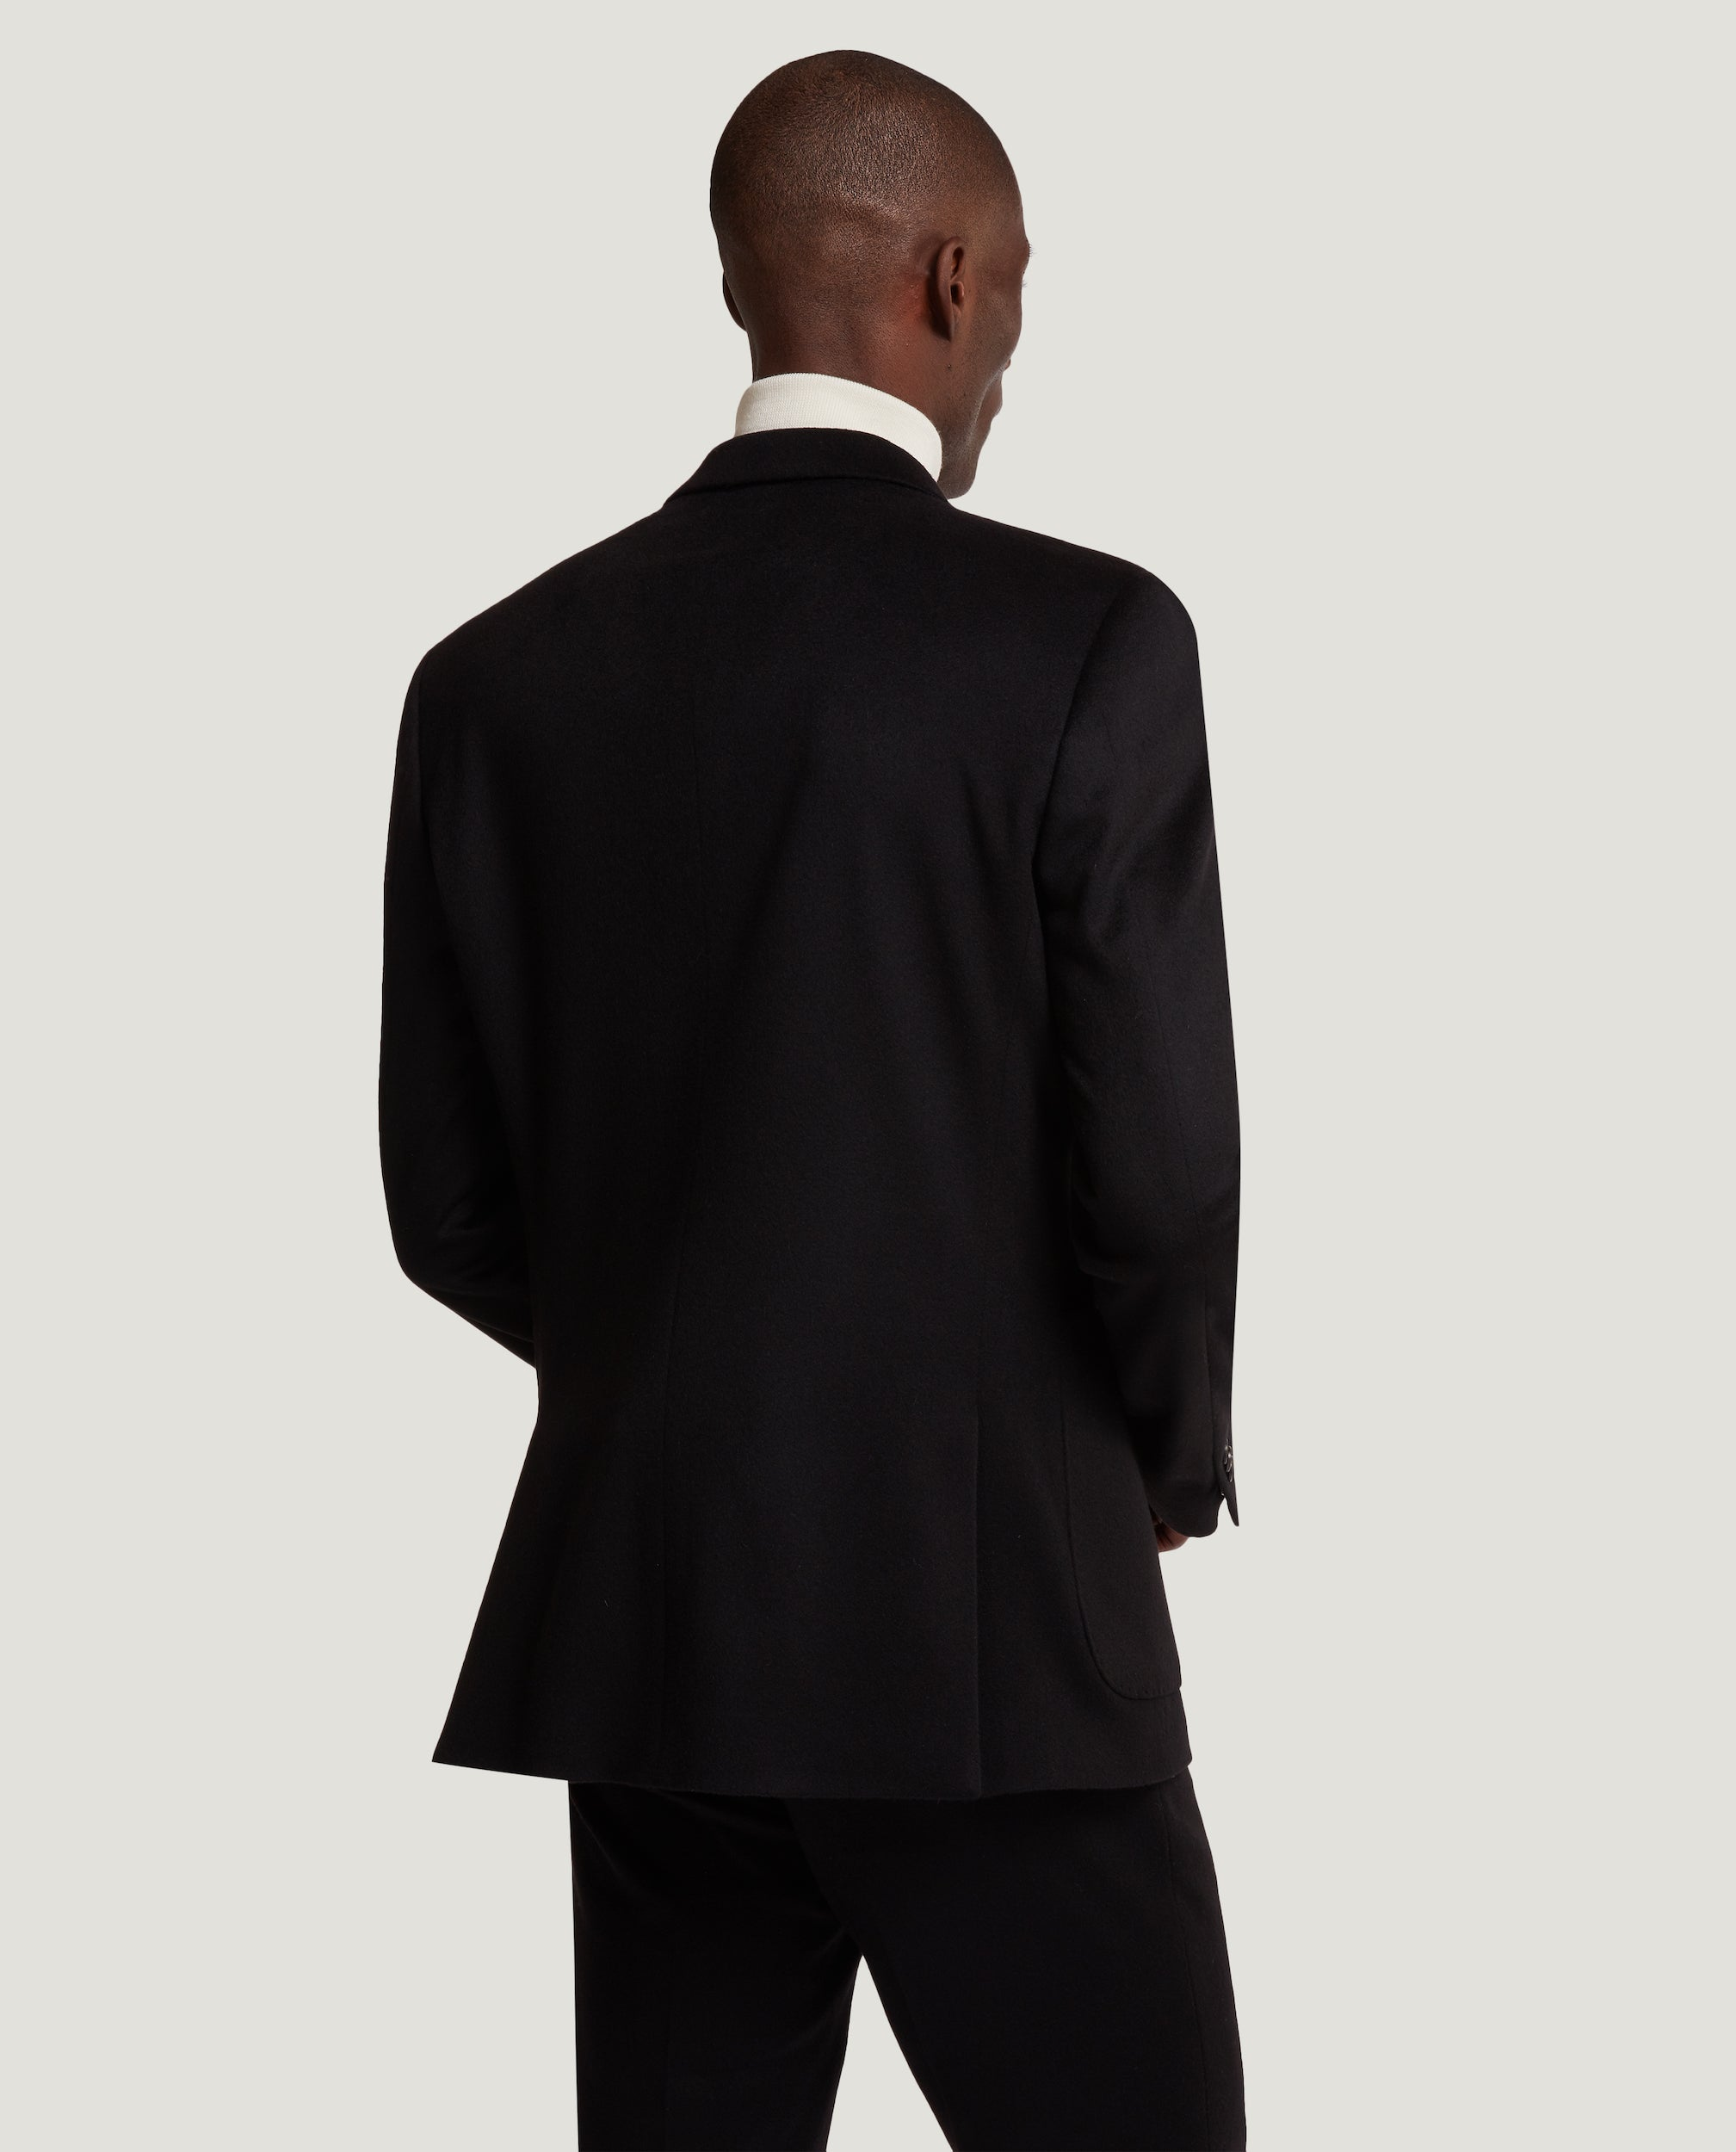 ASTOR Constructed Cashmere Blazer | MR PORTER EXCLUSIVE